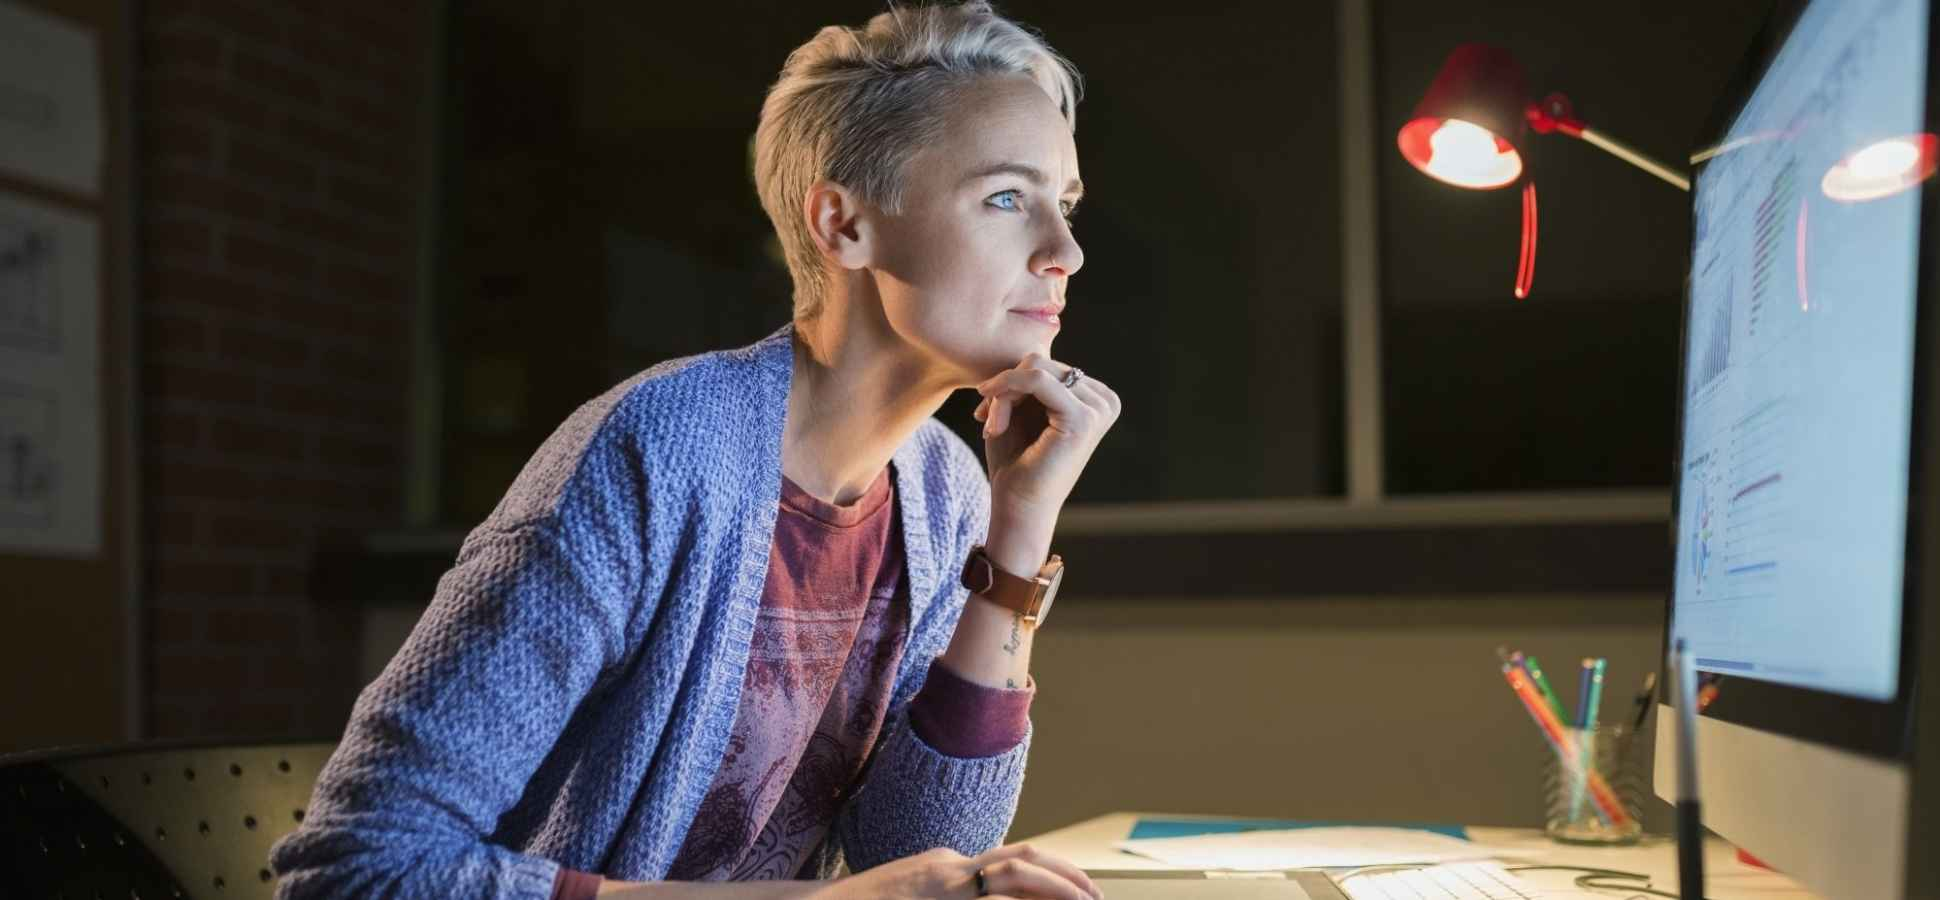 Three Ways To Combat Unhappiness At Work